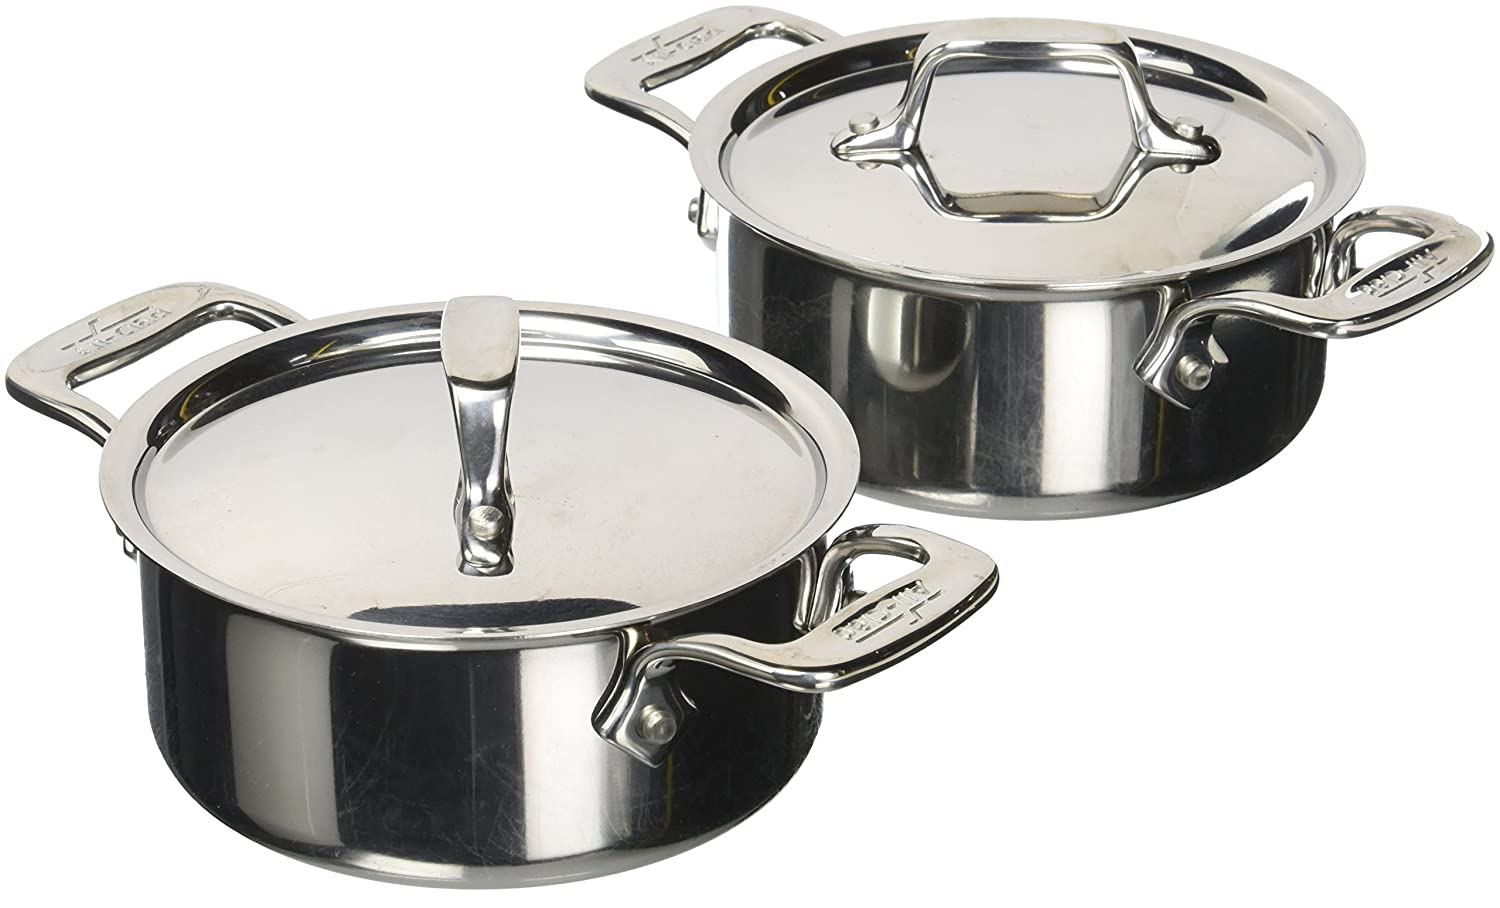 All-Clad E849A264 Stainless Steel Cocottes, 0.5-Quart, 2-Piece, Silver Groupe SEB 2100079404